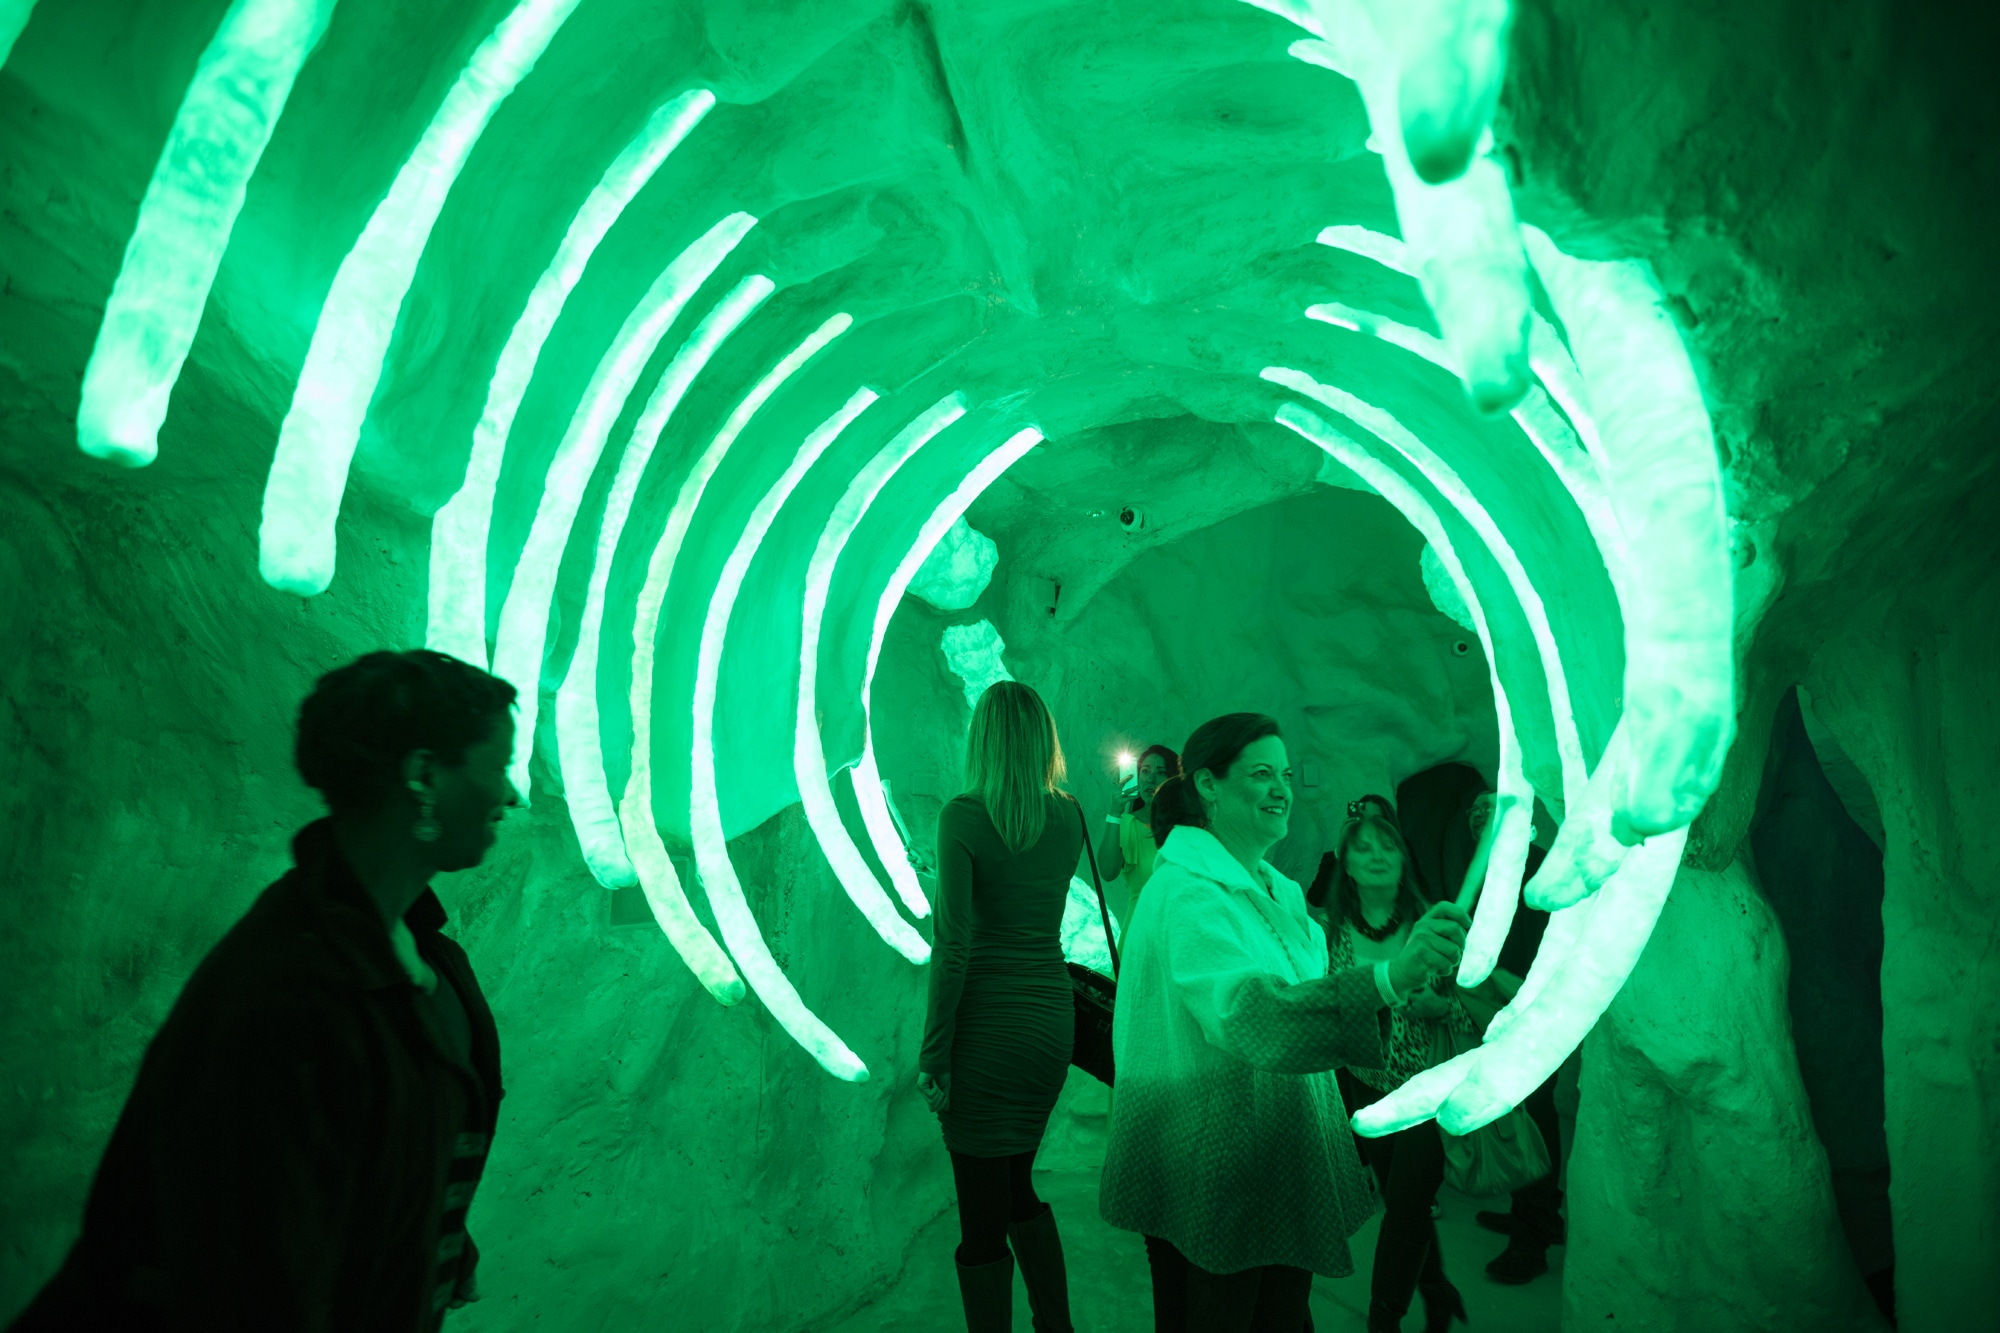 Making Music at Meow Wolf